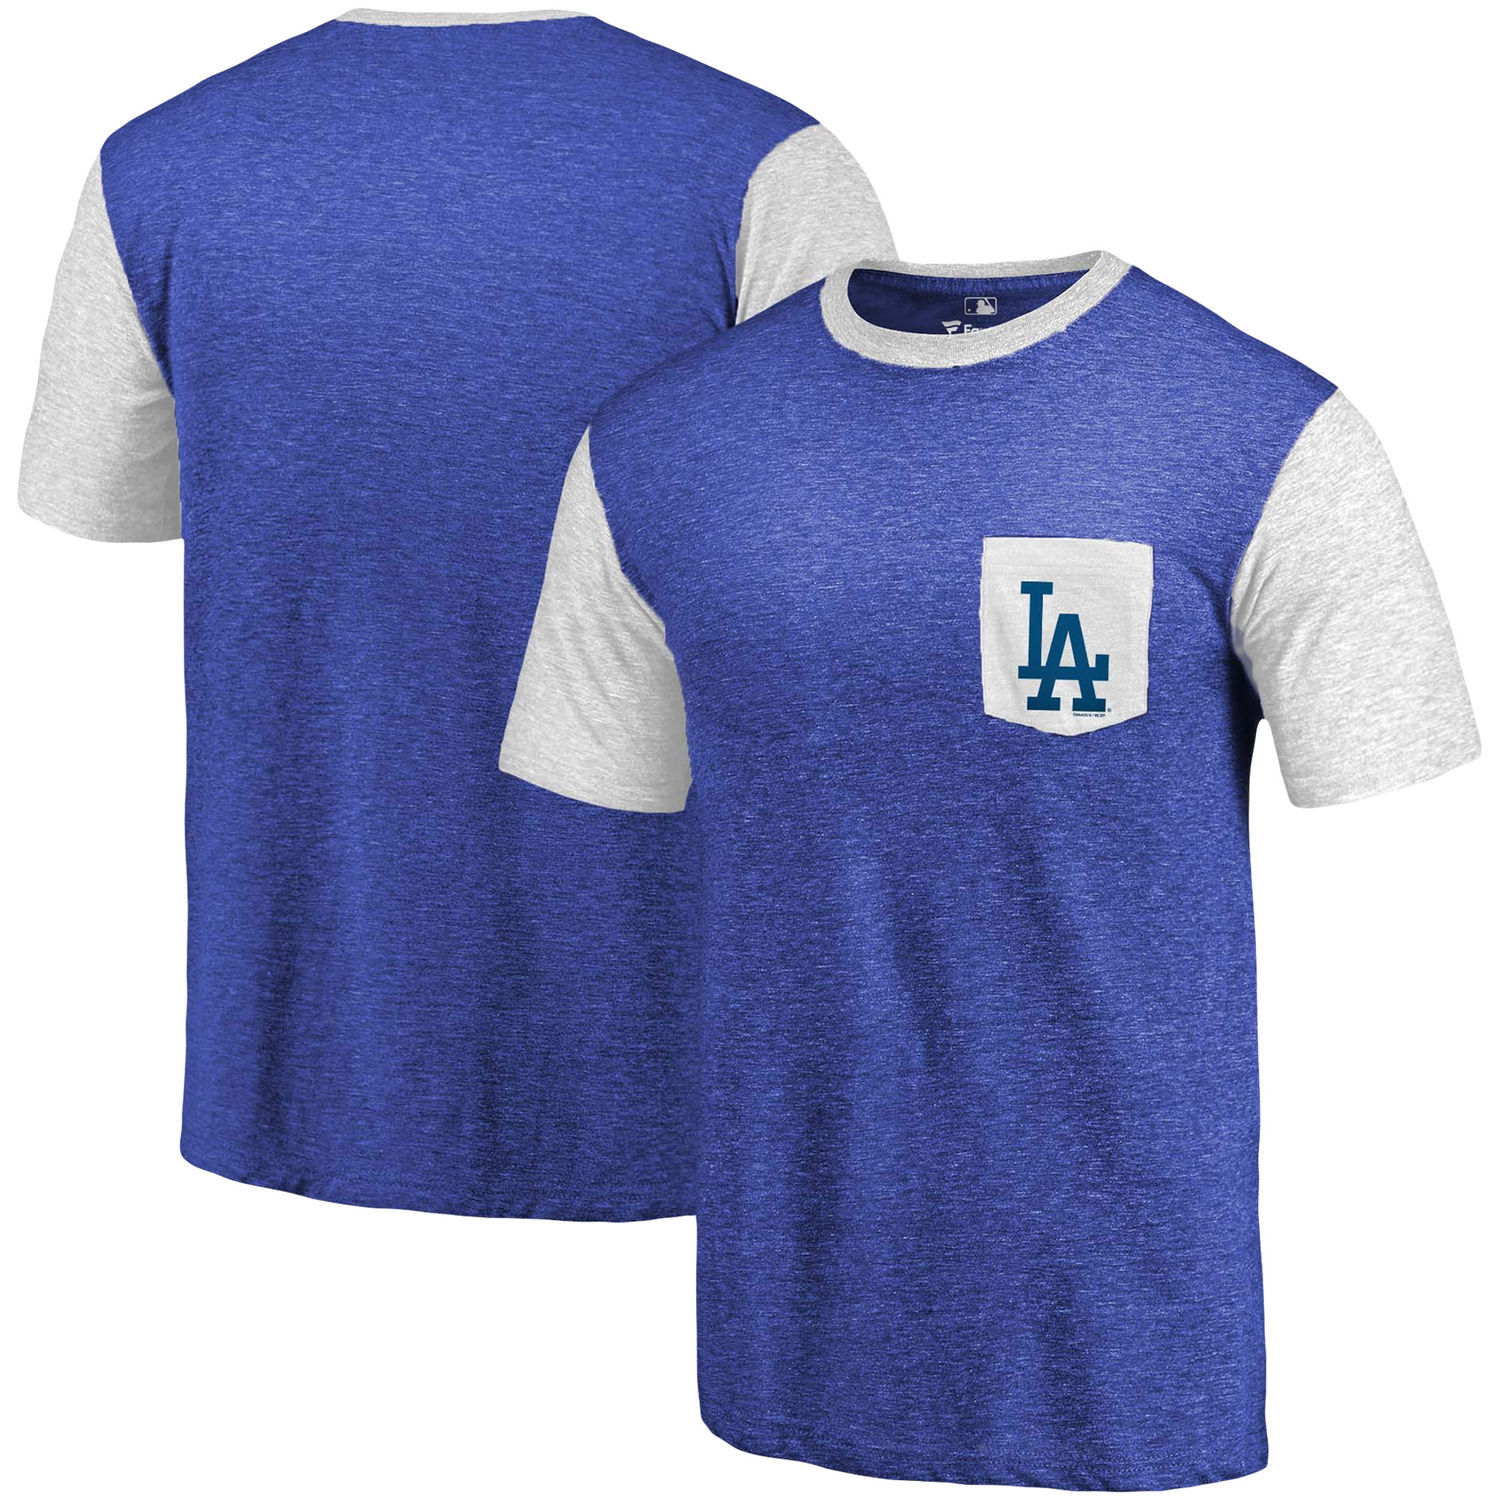 Men's Los Angeles Dodgers Fanatics Branded Royal-White Refresh Pocket T-Shirt